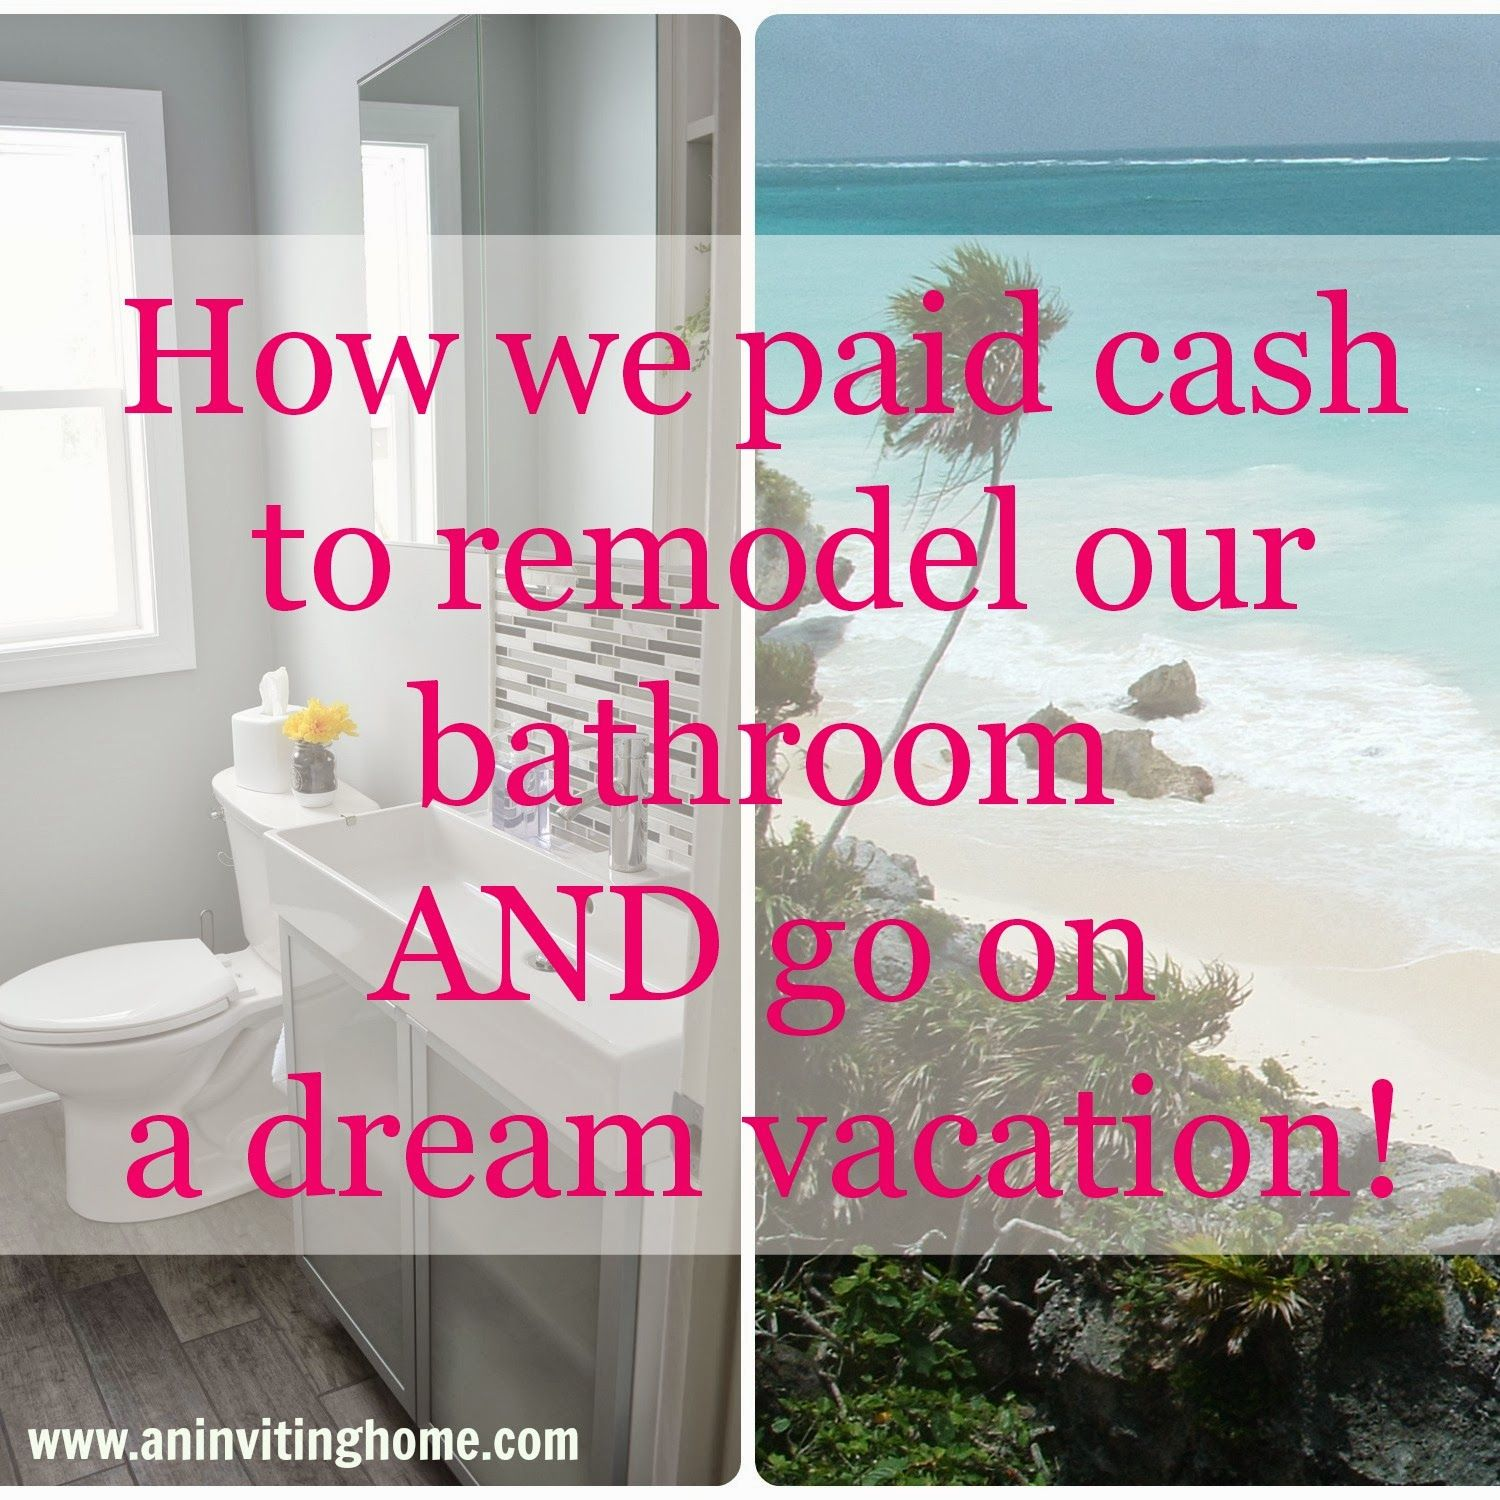 How We Paid Cash To Remodel Our Bathroom And Go On A Dream